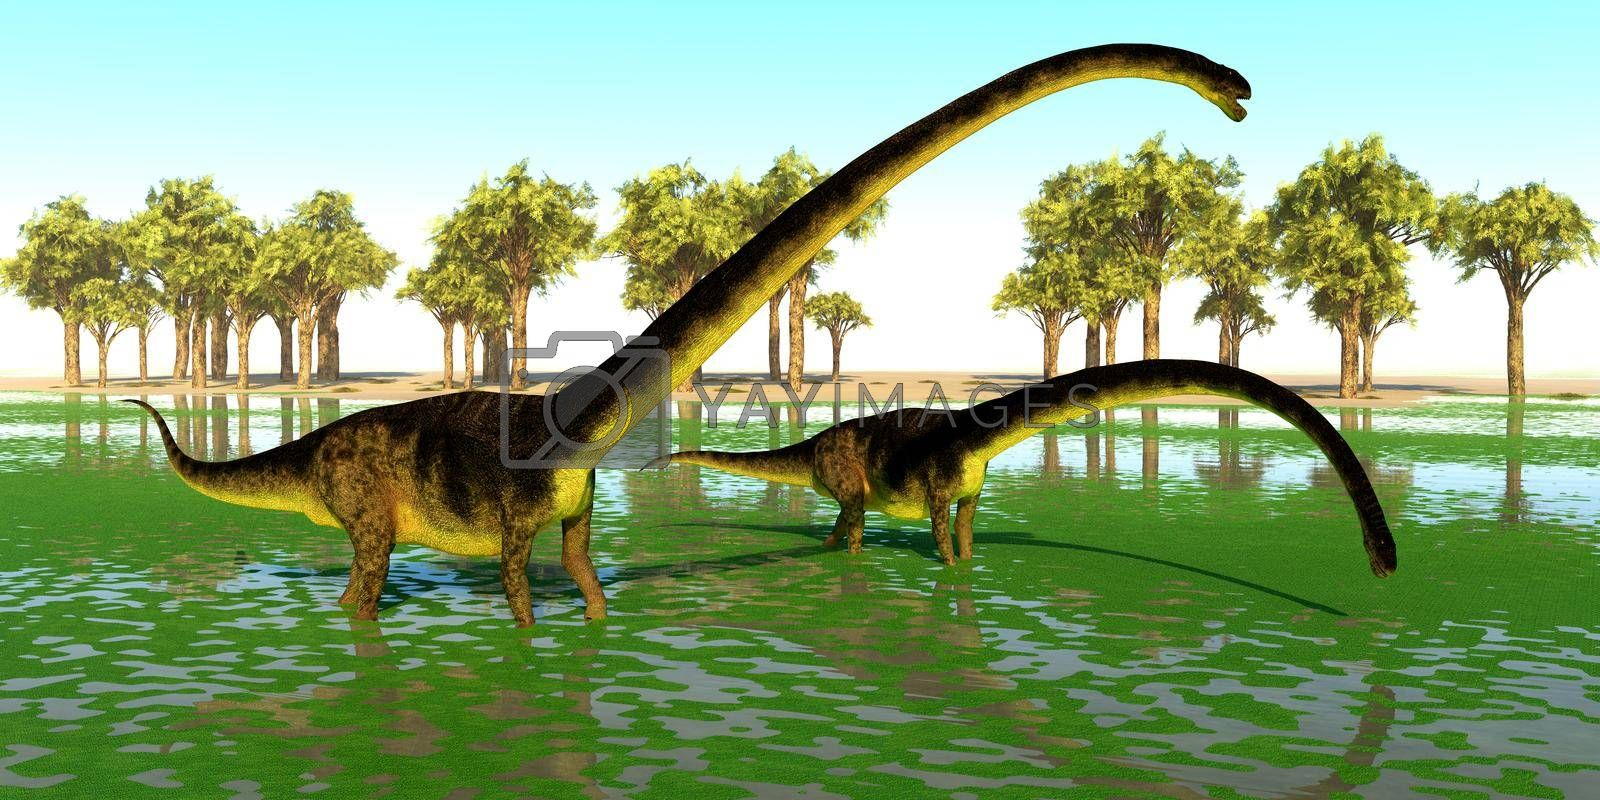 Two Omeisaurus dinosaurs eat water plants for the mineral content during the Jurassic Period of China.